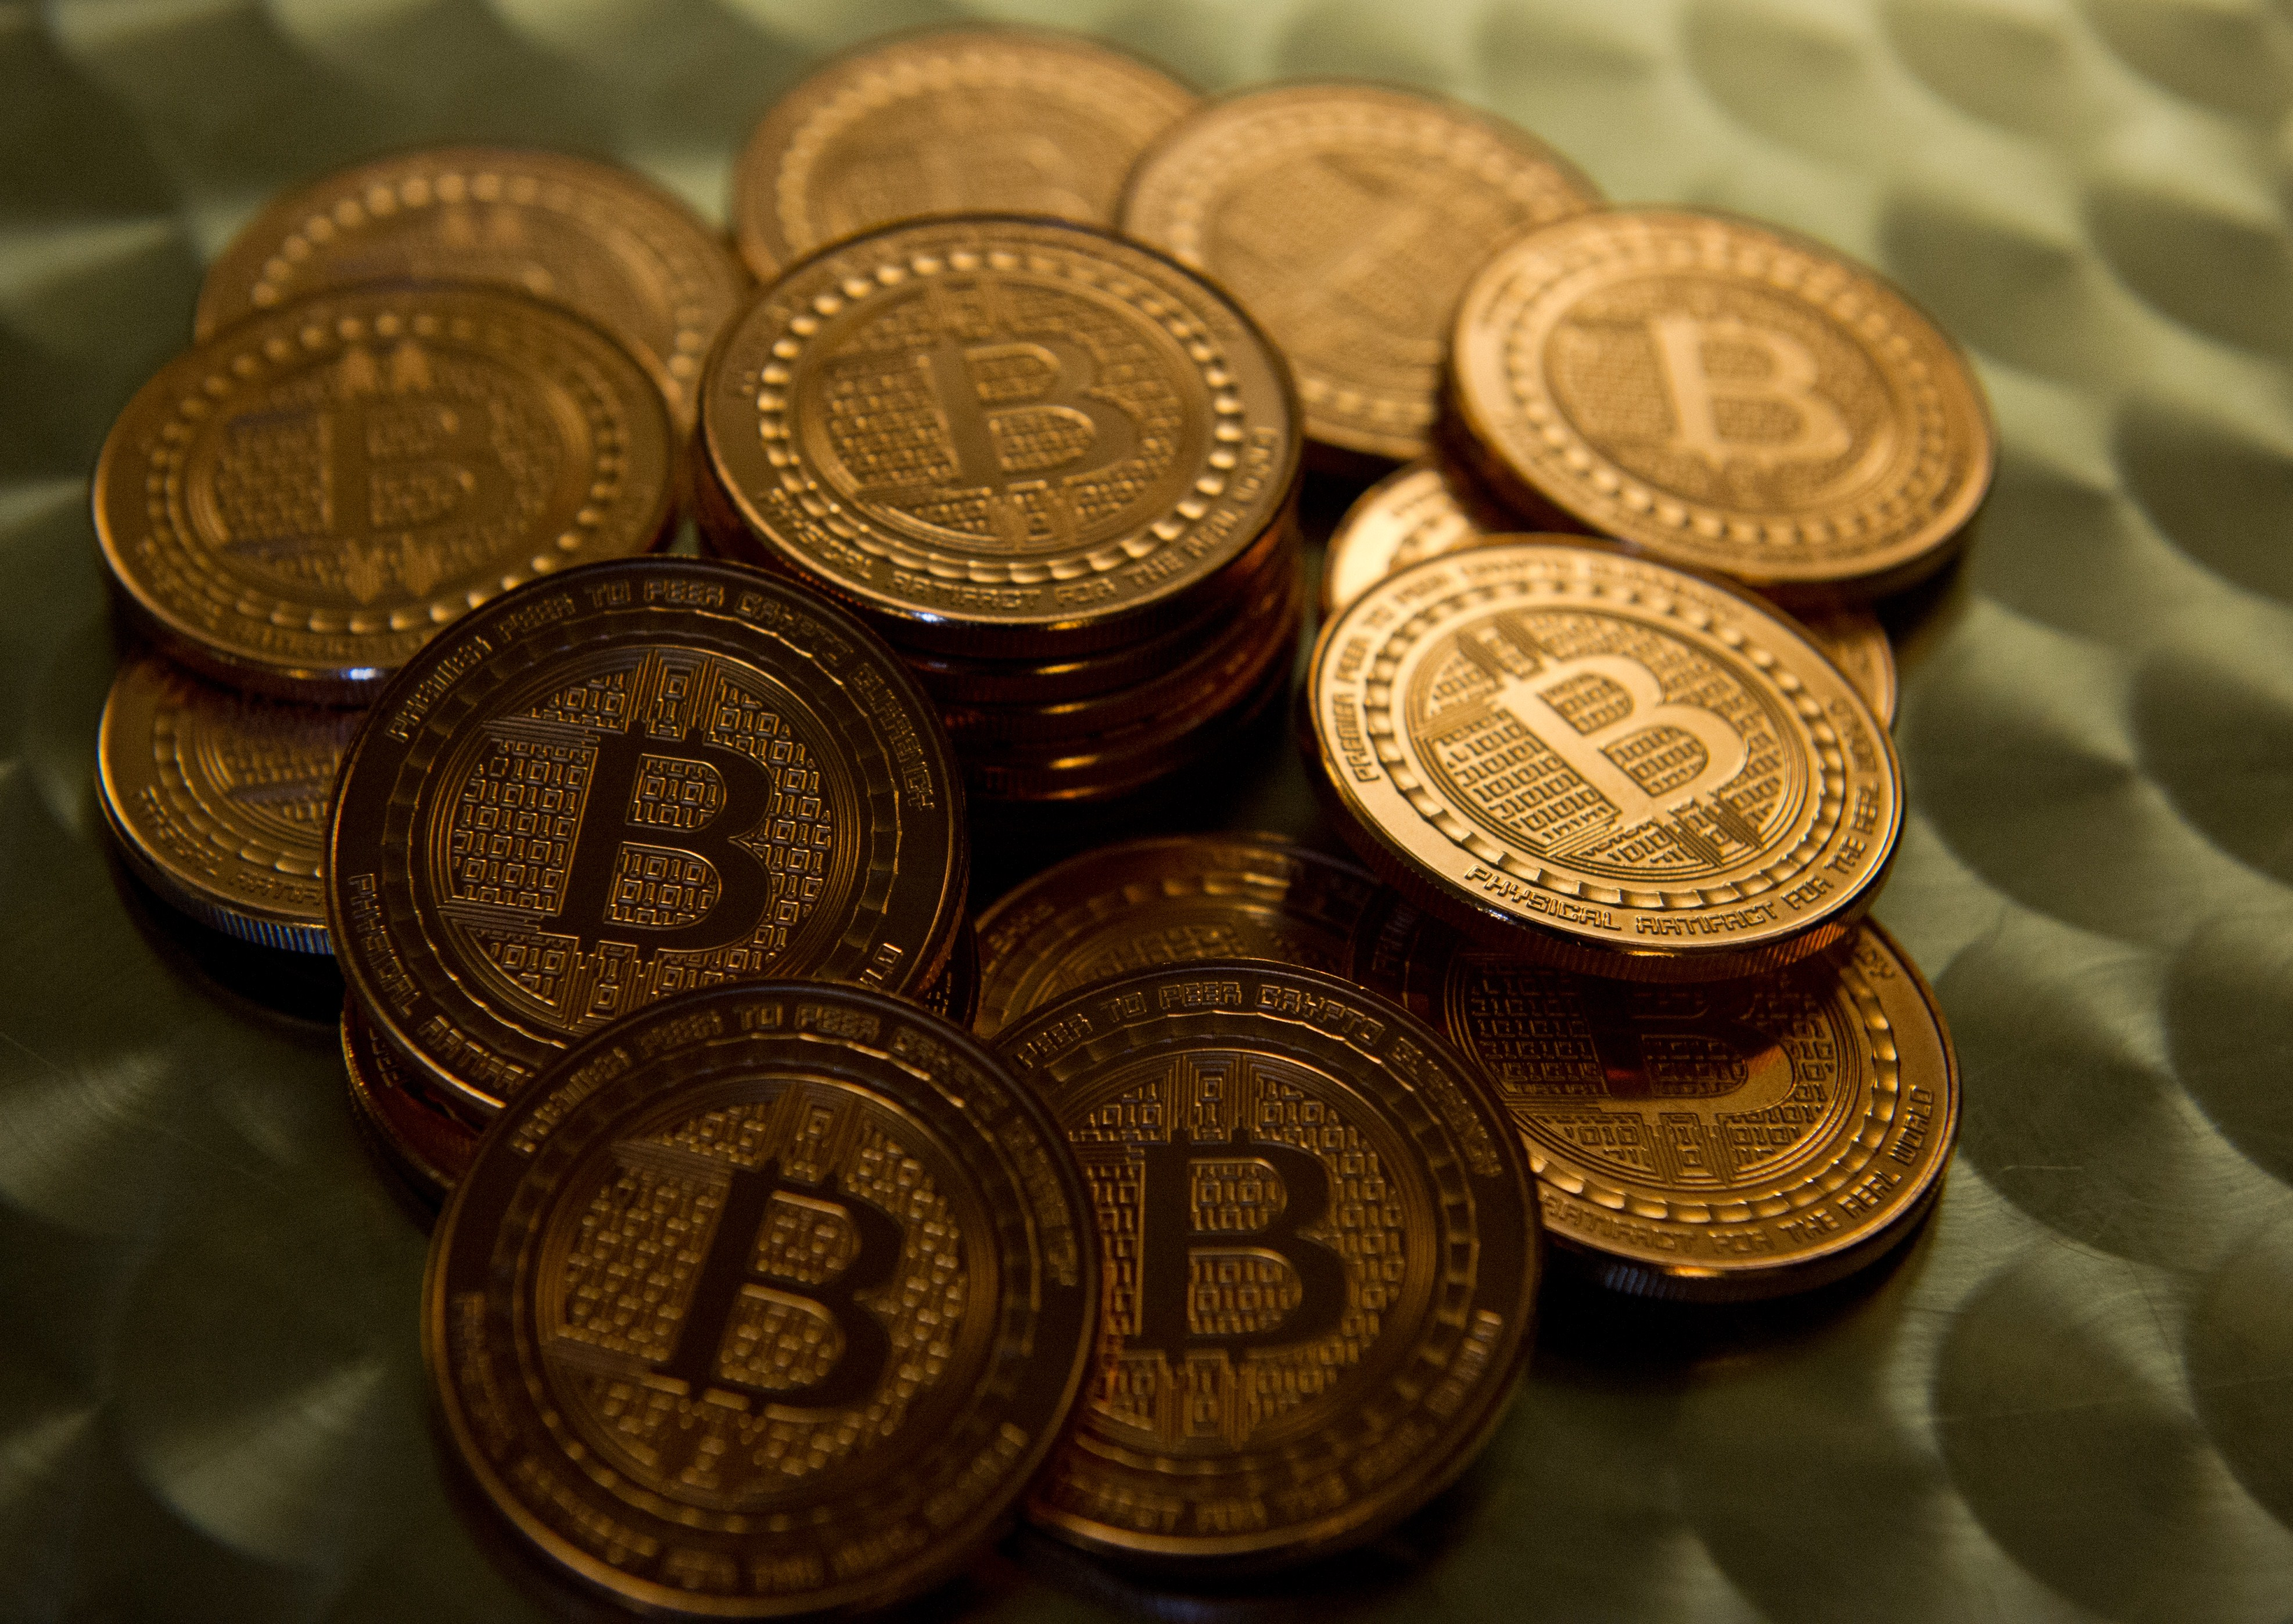 This May 1, 2014 photo taken in Washington, DC shows bitcoin medals. (KAREN BLEIER/AFP/Getty Images)